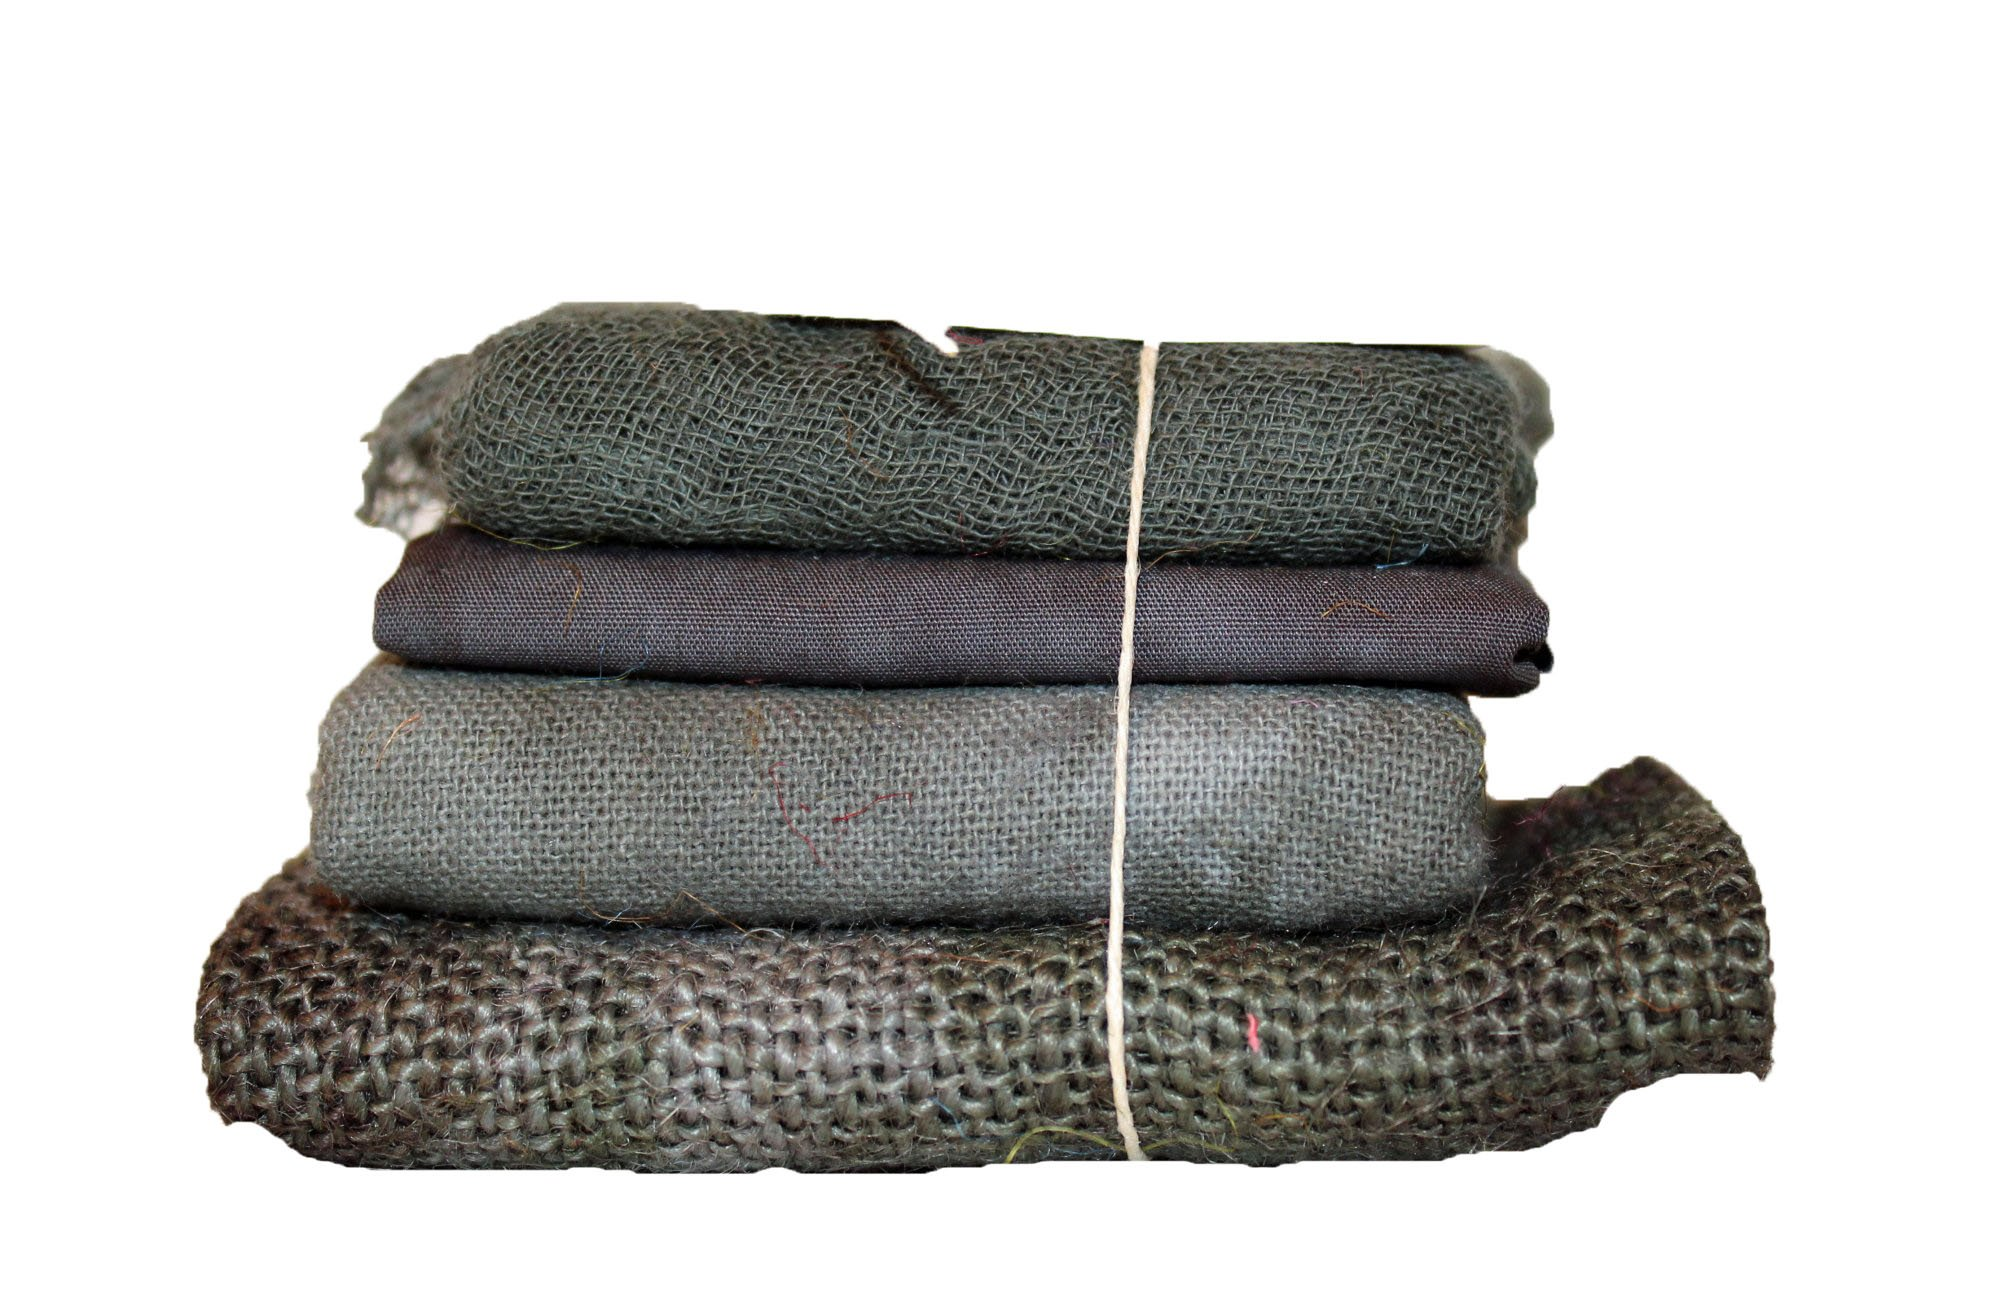 Bark Bindle - Cheesecloth, Cotton, Osnaburg, & Burlap